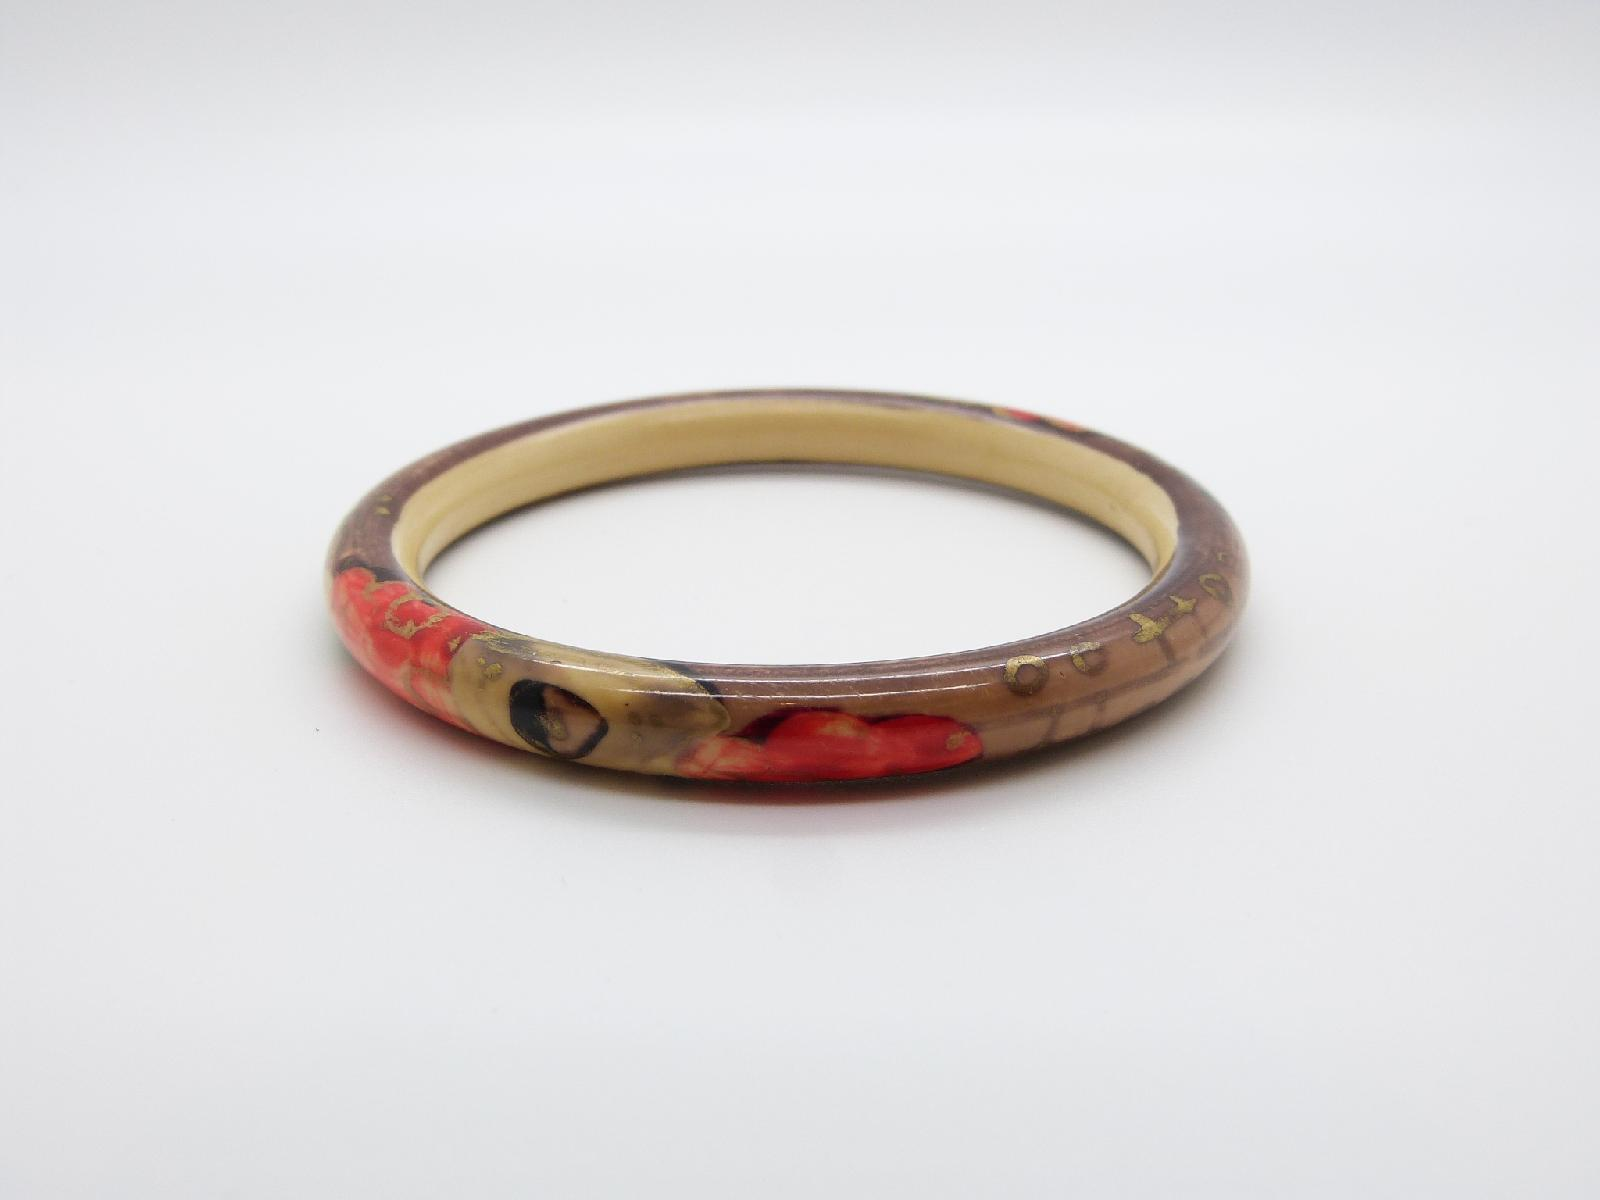 £40.00 - Vintage 30s Red Brown and Cream Floral Design Armlet Flapper Bangle